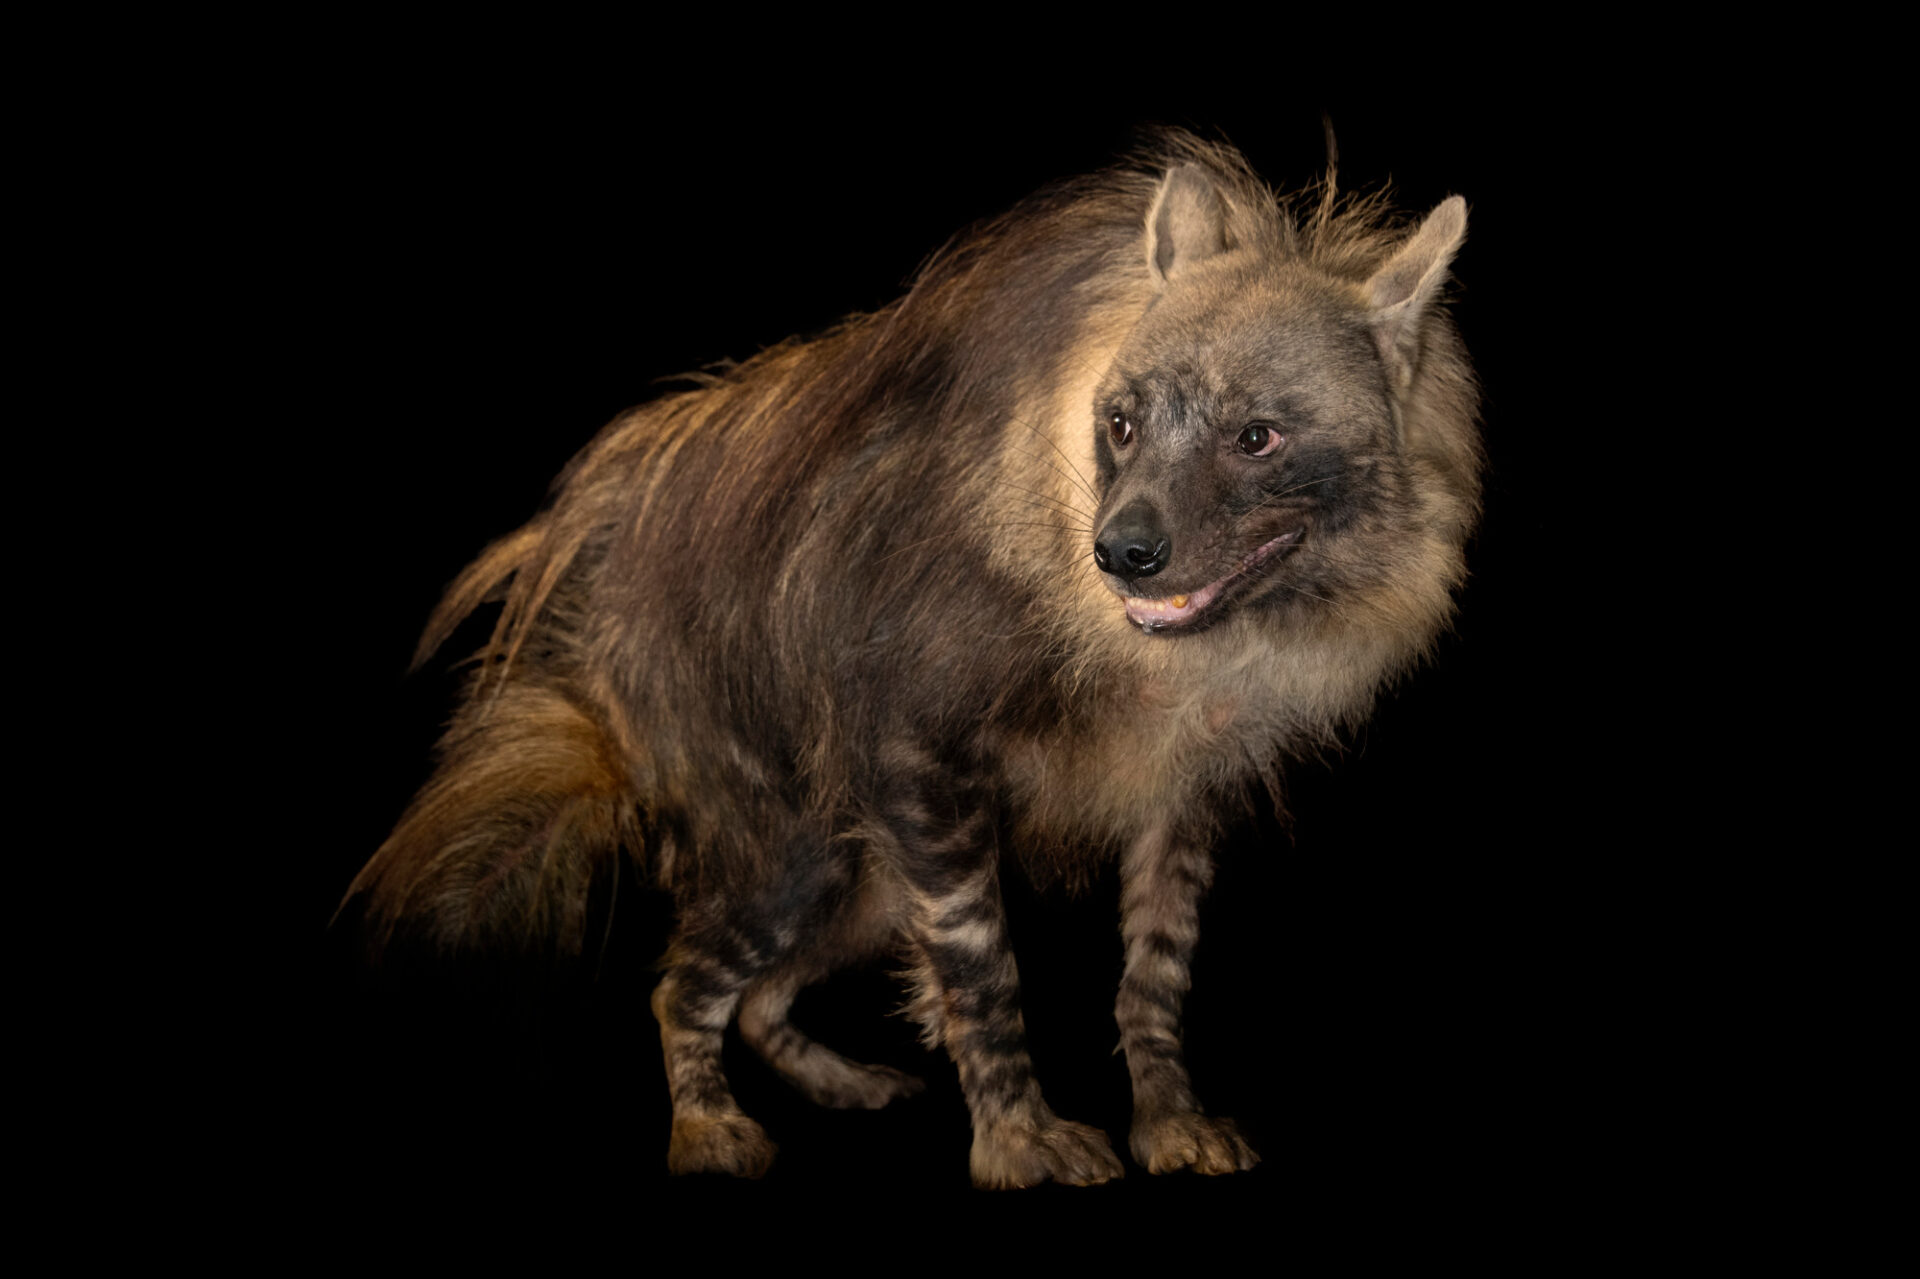 Photo: A brown hyena (Parahyaena brunnea) at the Prague Zoo. This species is listed as Near Threatened on the IUCN Red List.